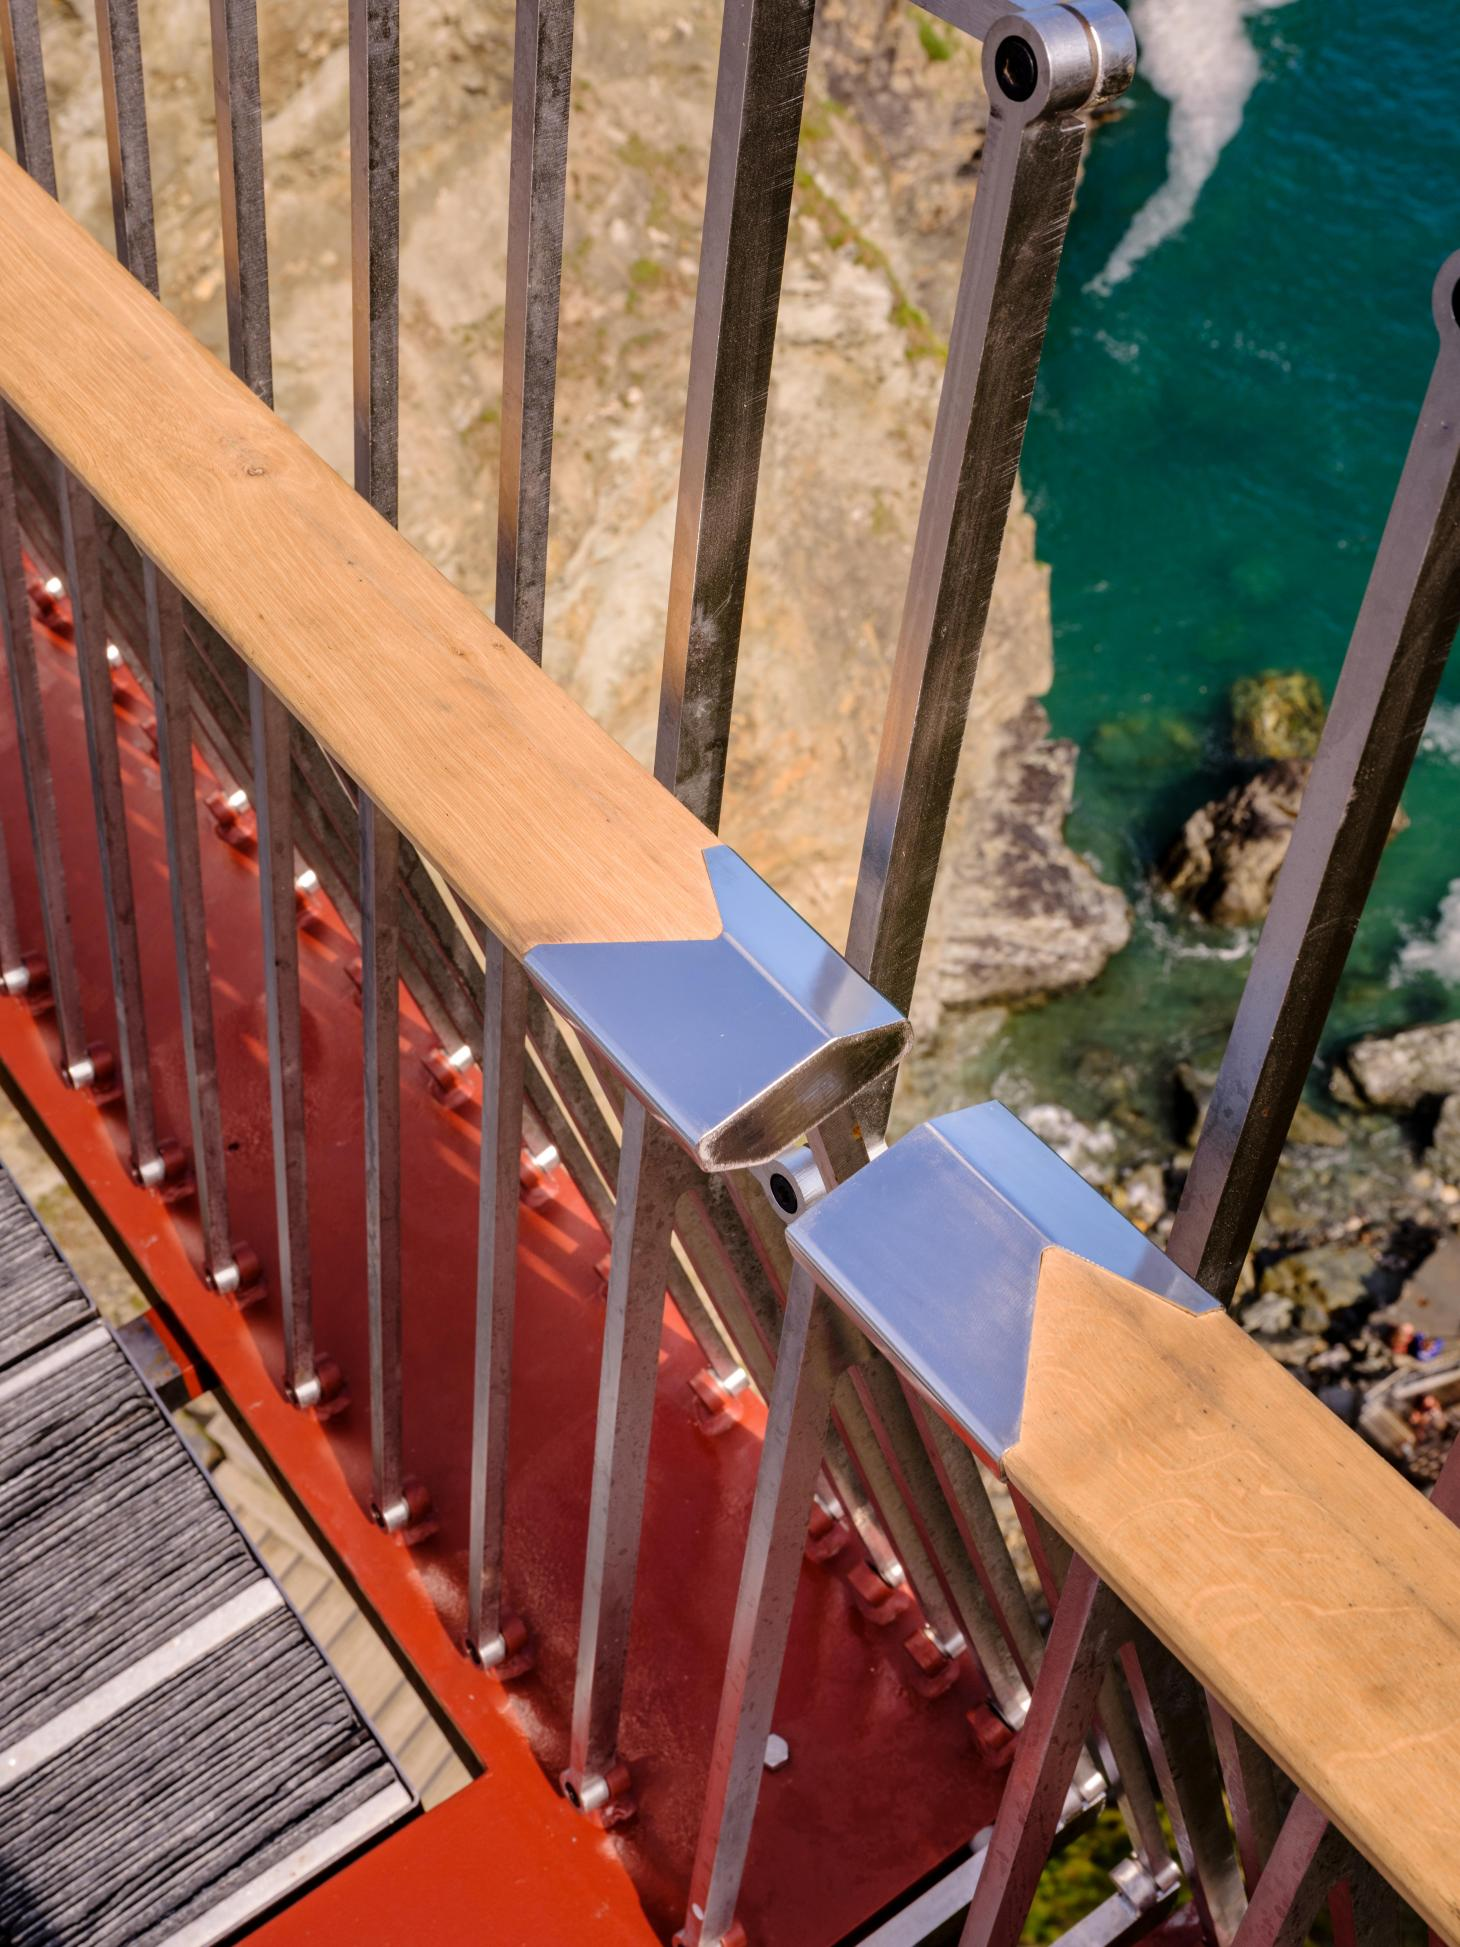 Tintagel bridge detail